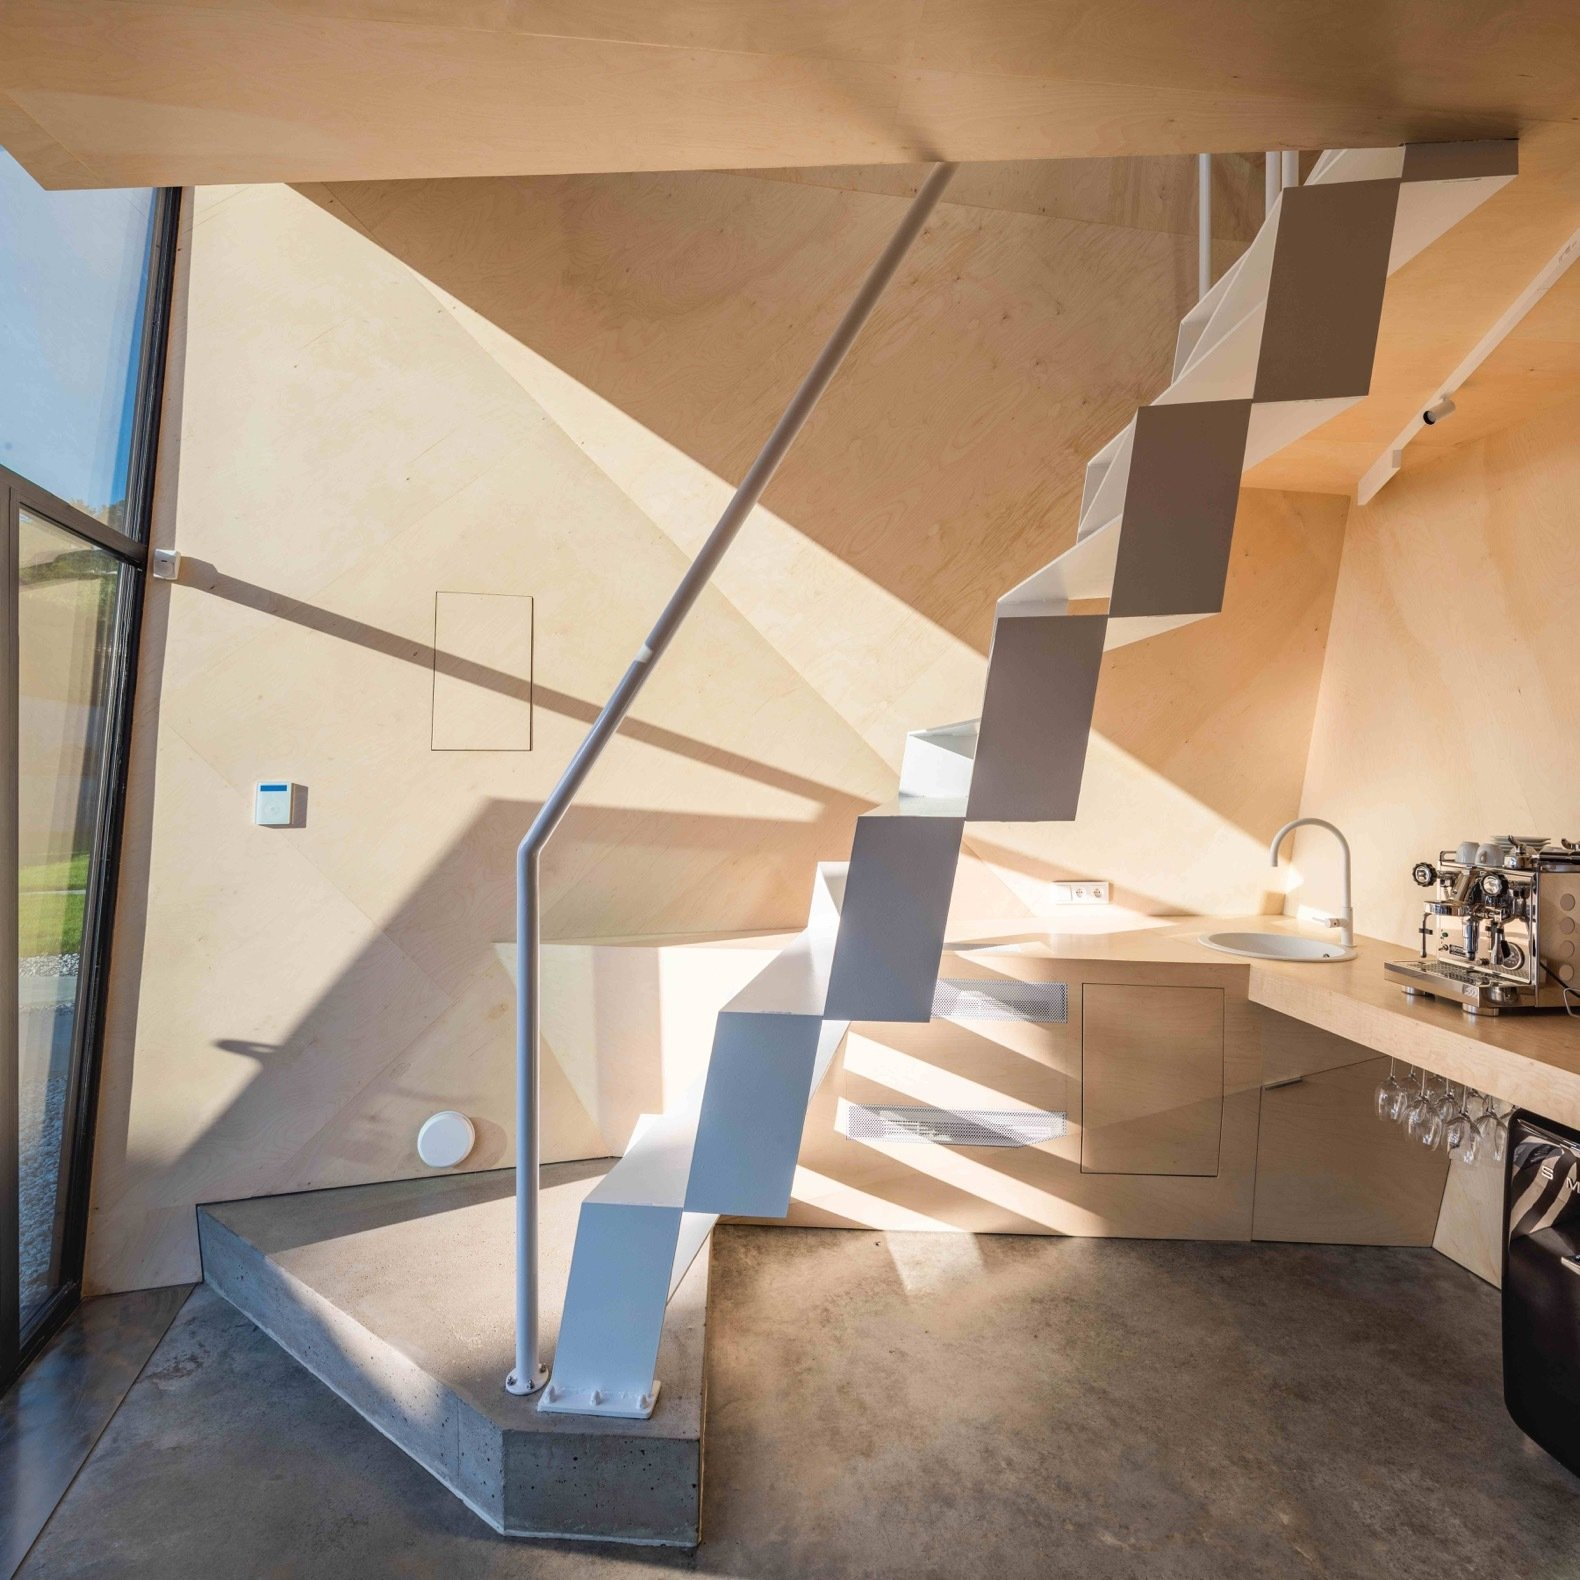 Staircase, Metal Railing, and Metal Tread A space-saving staggered steel staircase leads up to the loft with a bedroom and bathroom.  Photo 6 of 8 in A Family in Poland Adds an Origami-Inspired Retreat to Their Backyard